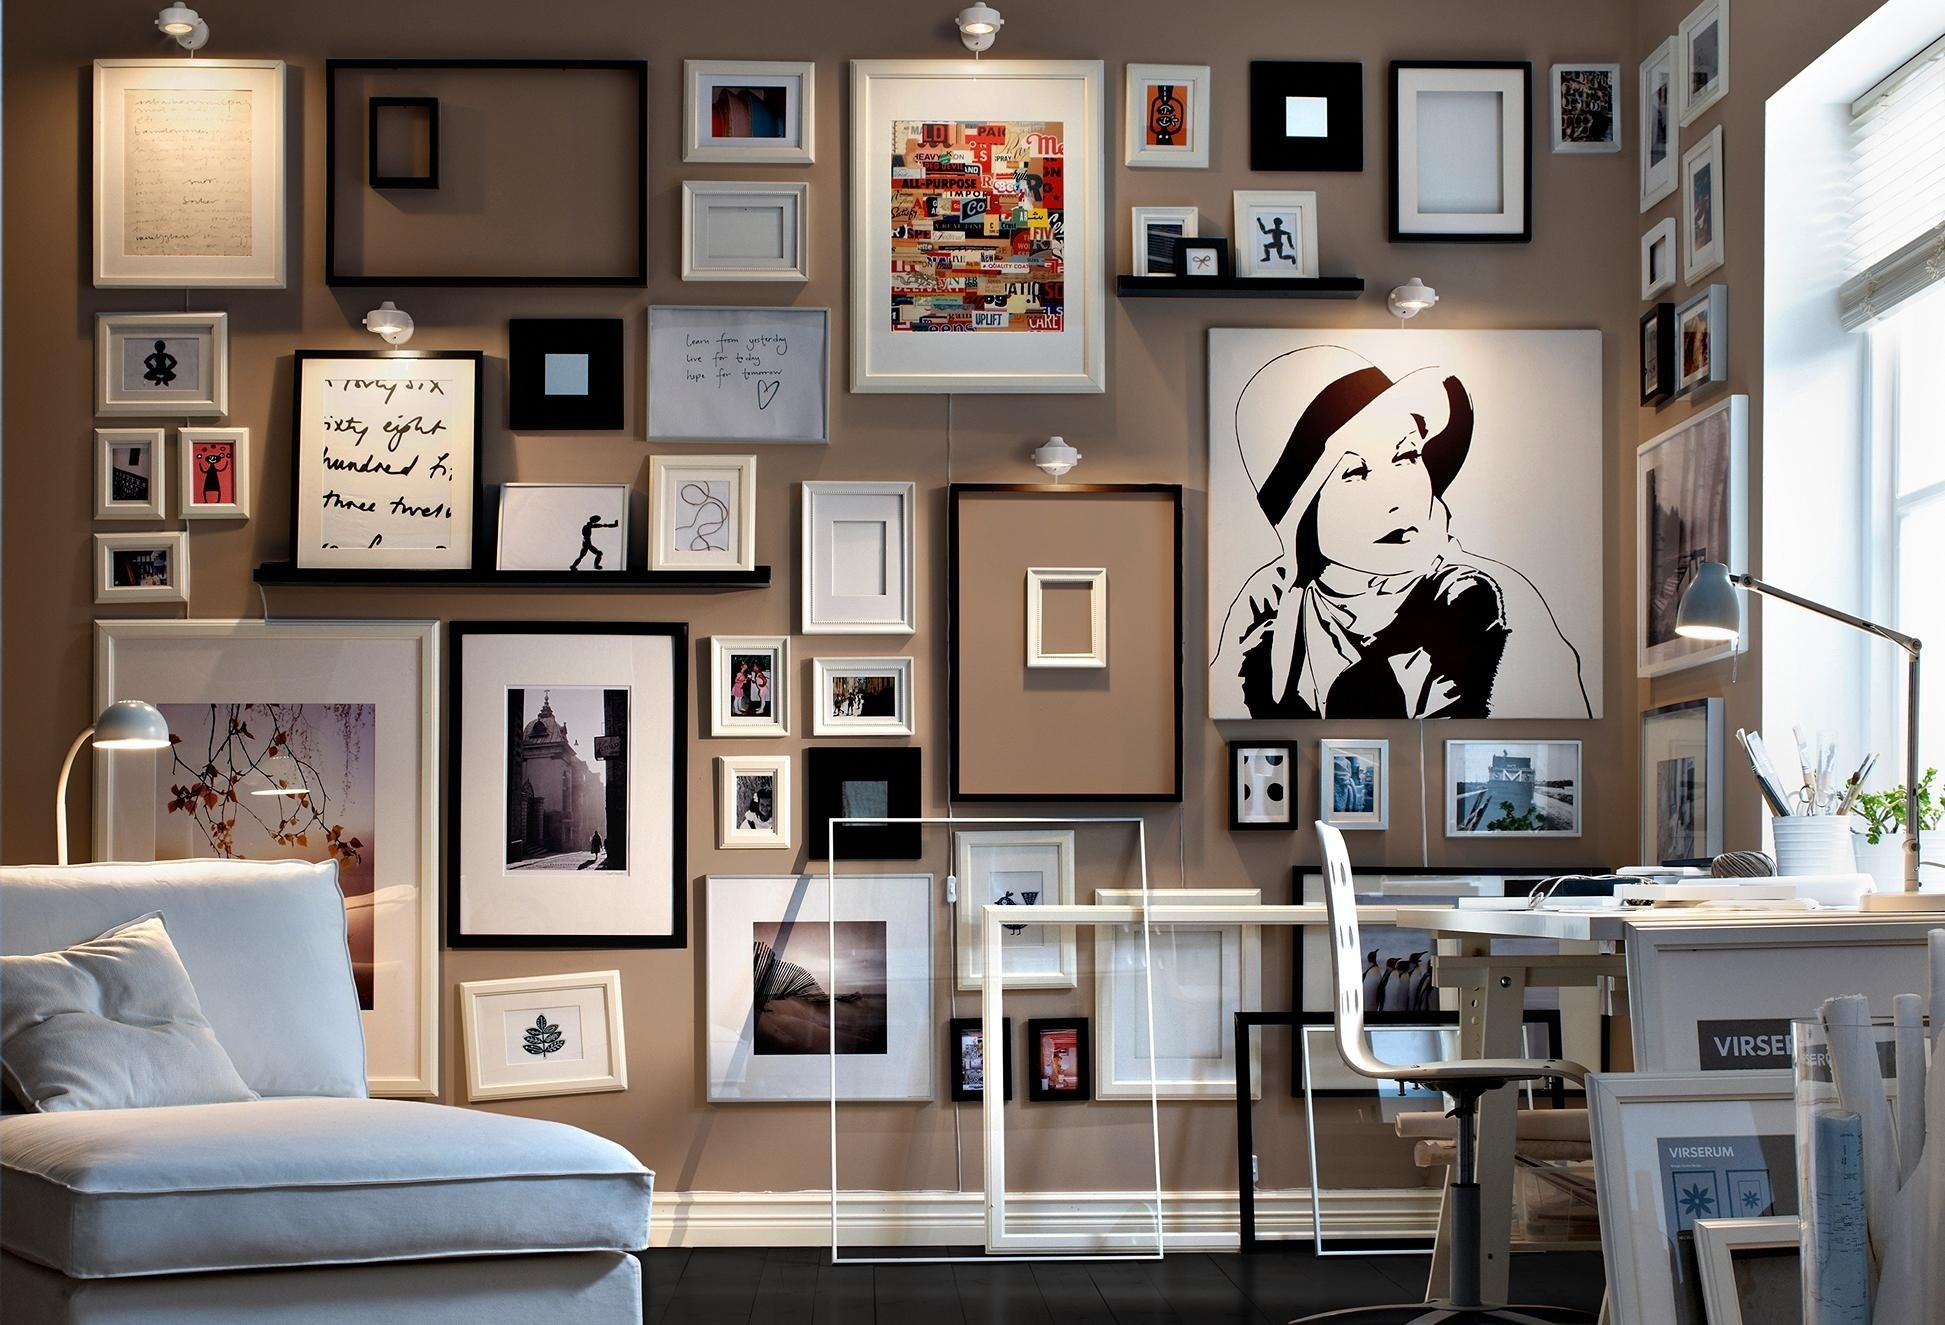 10 Attractive Ideas For Hanging Pictures On Walls creative gallery wall ideas template layout decoration small with 2020